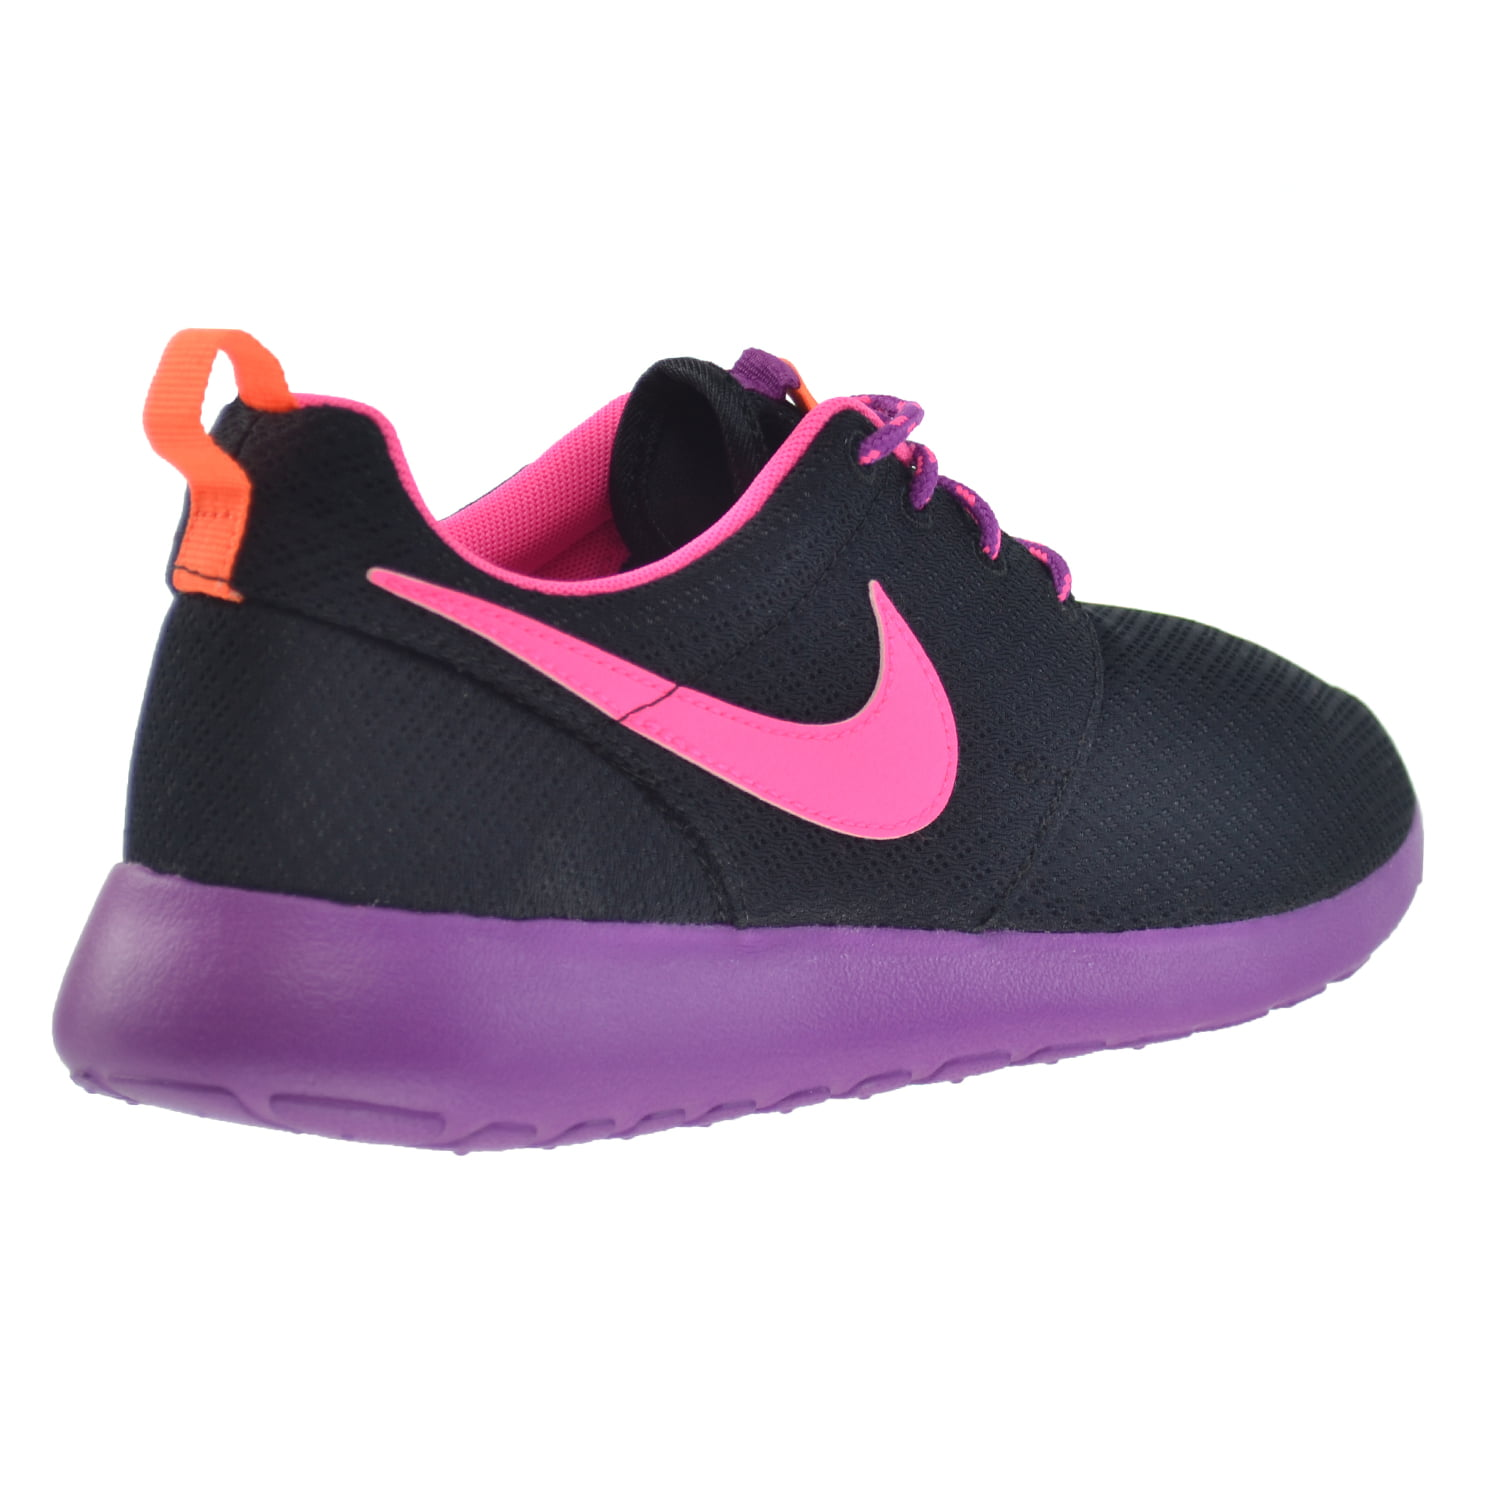 469cbe30786a Nike - Nike Rosherun (GS) Big Kids  Shoes Black Pink Pow-Bold Berry-purple  599729-007 - Walmart.com